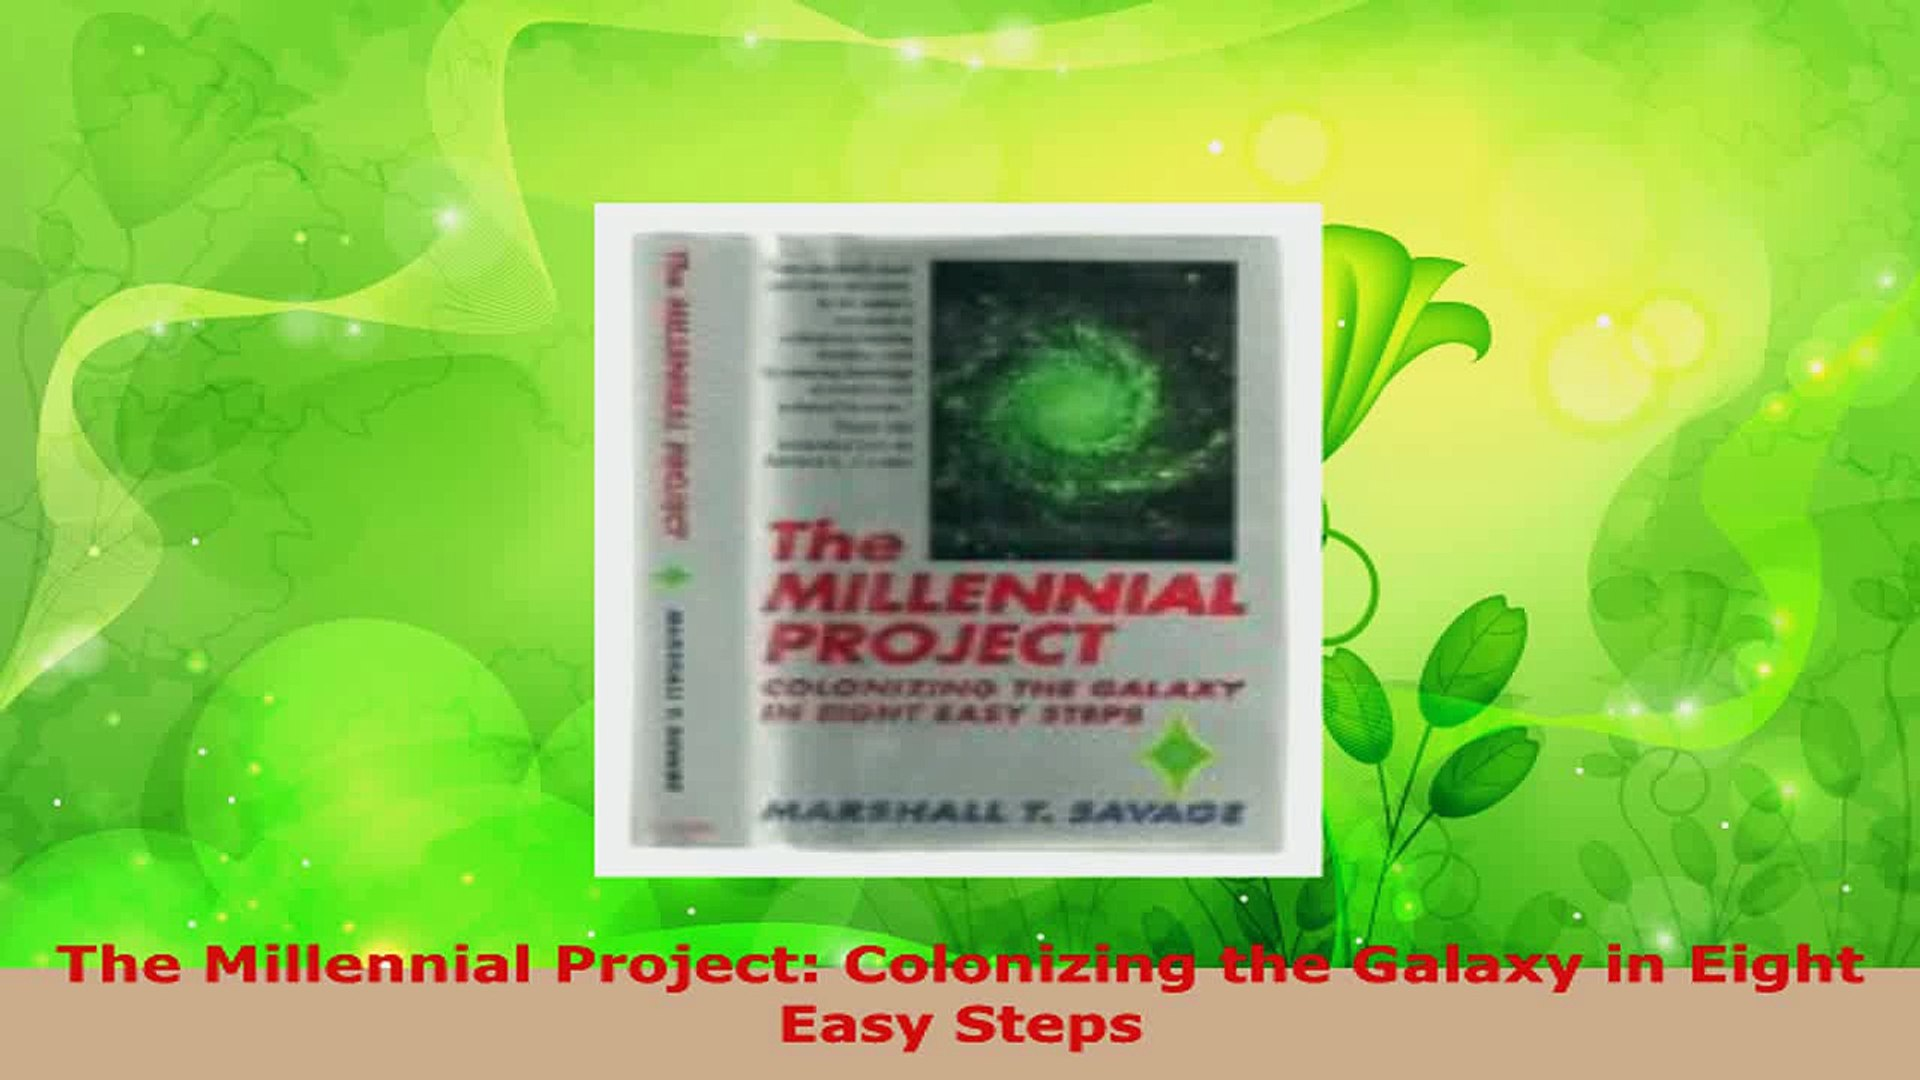 Colonizing the Galaxy in Eight Easy Steps The Millennial Project